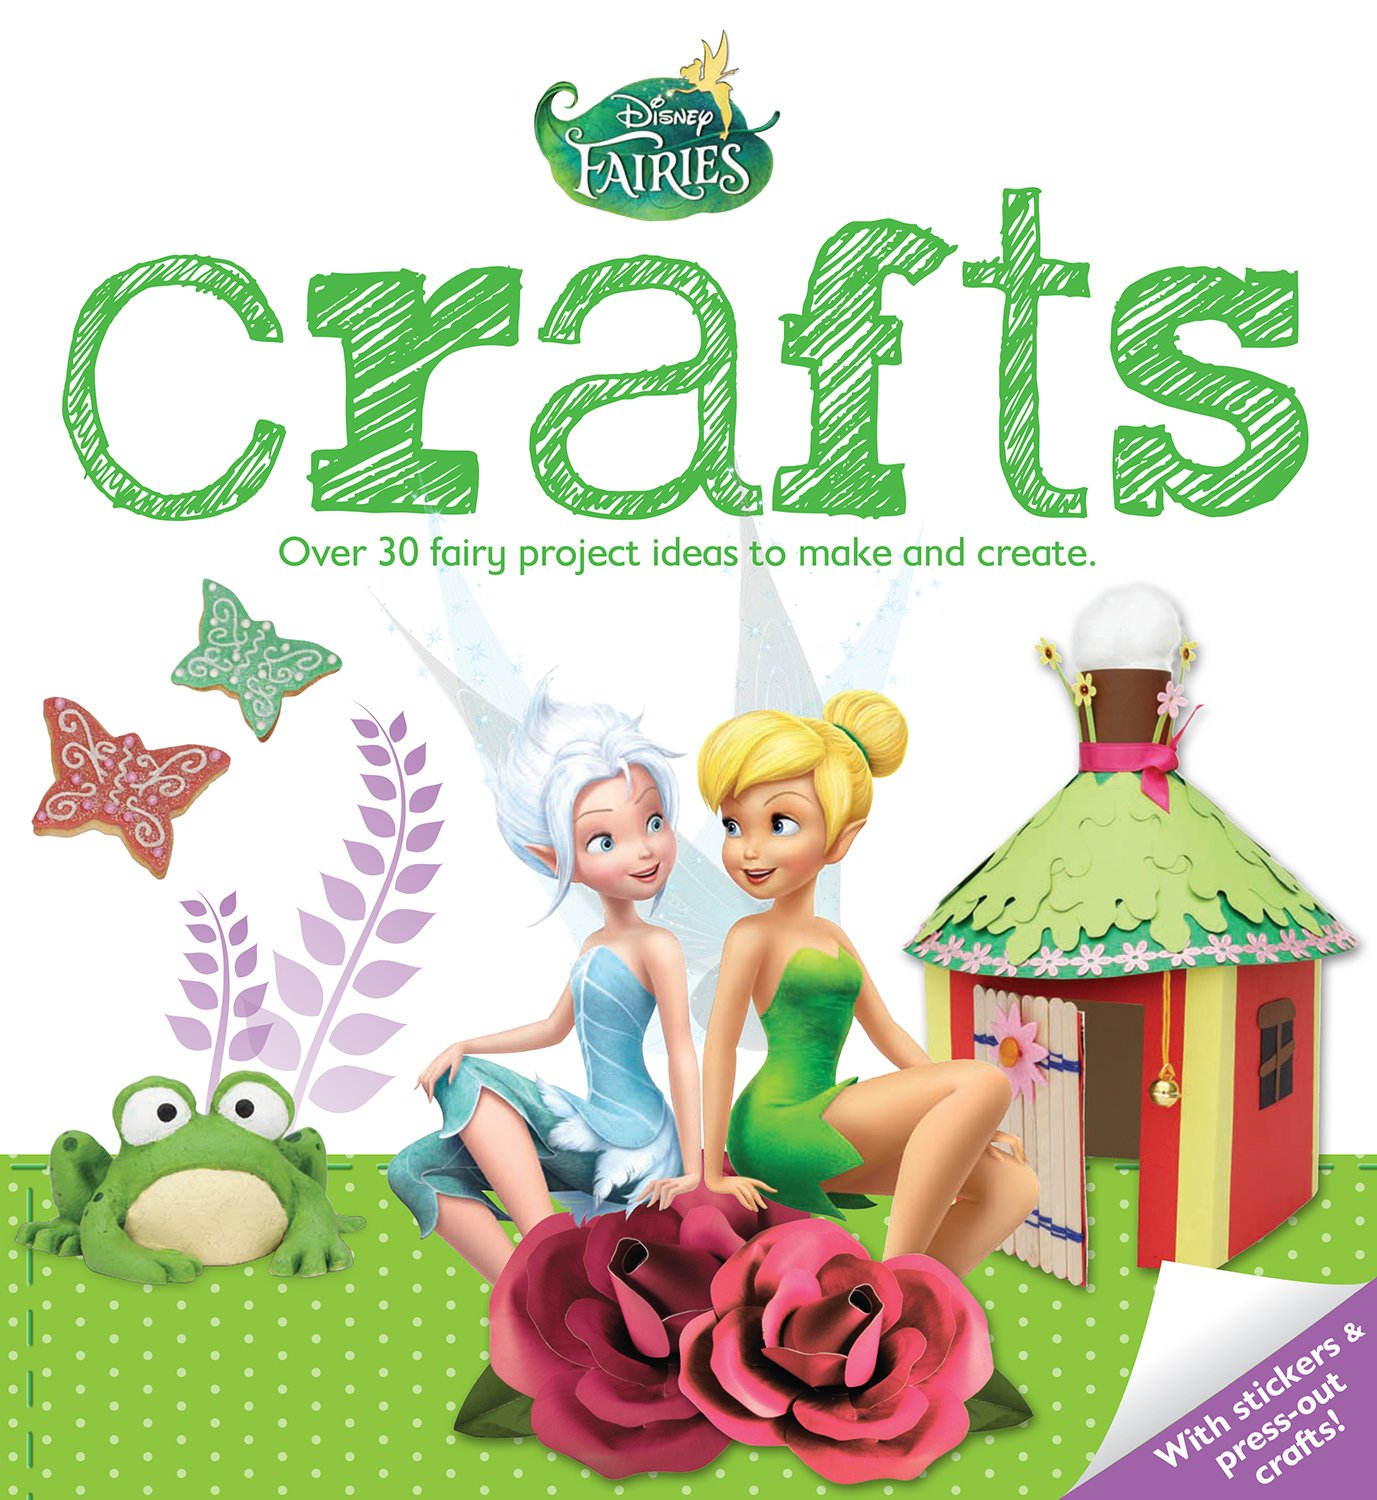 Disney Fairies Crafts: Over 30 Fairy Project Ideas to Make